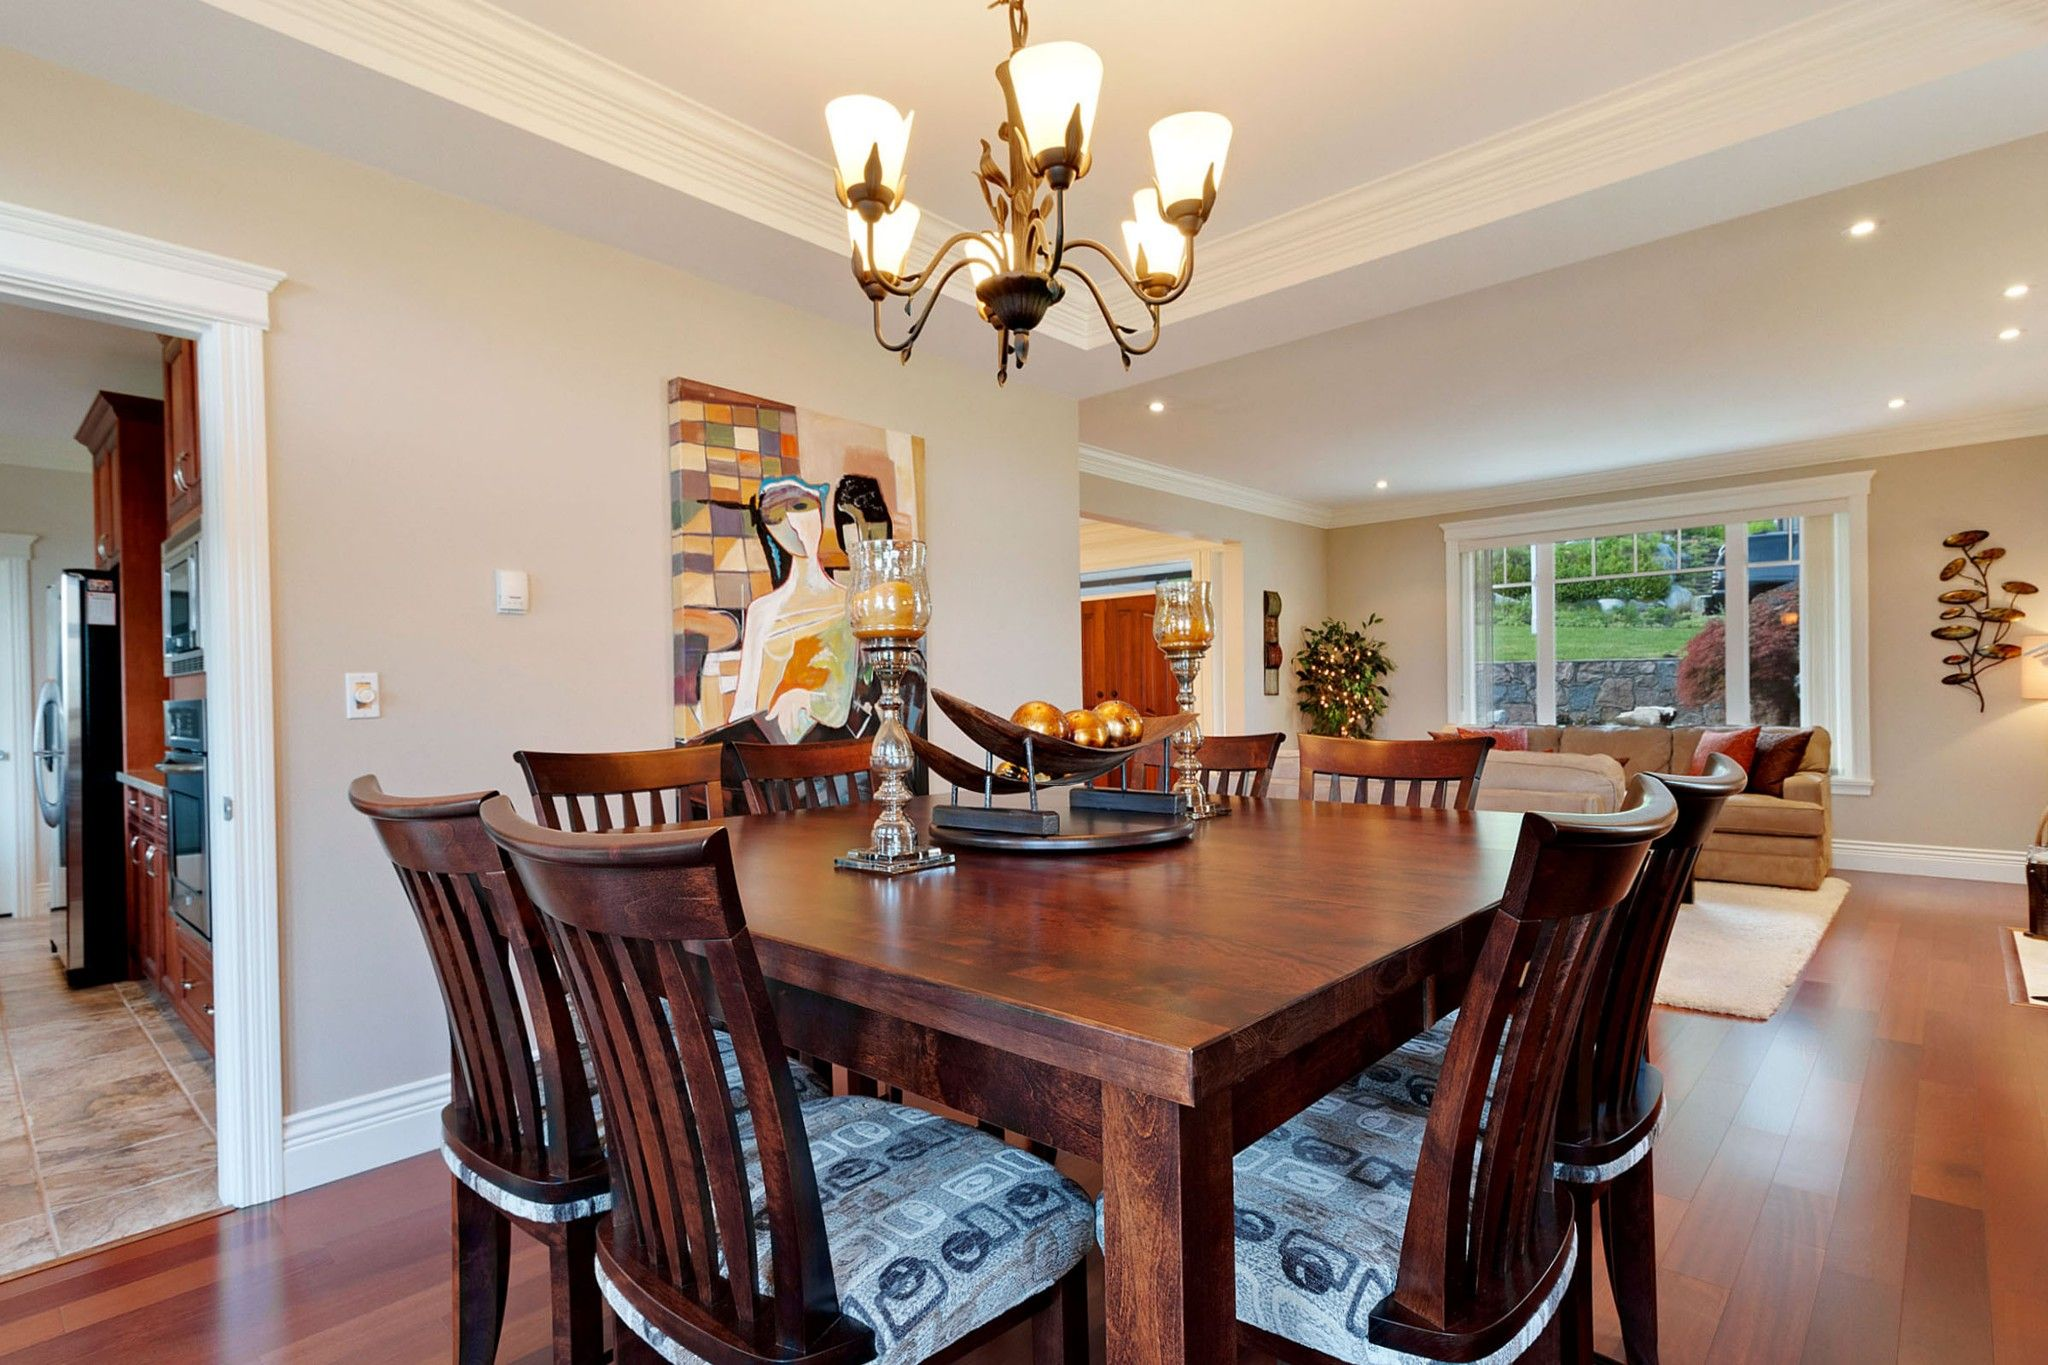 Photo 14: Photos: 1237 DYCK Road in North Vancouver: Lynn Valley House for sale : MLS®# R2374868